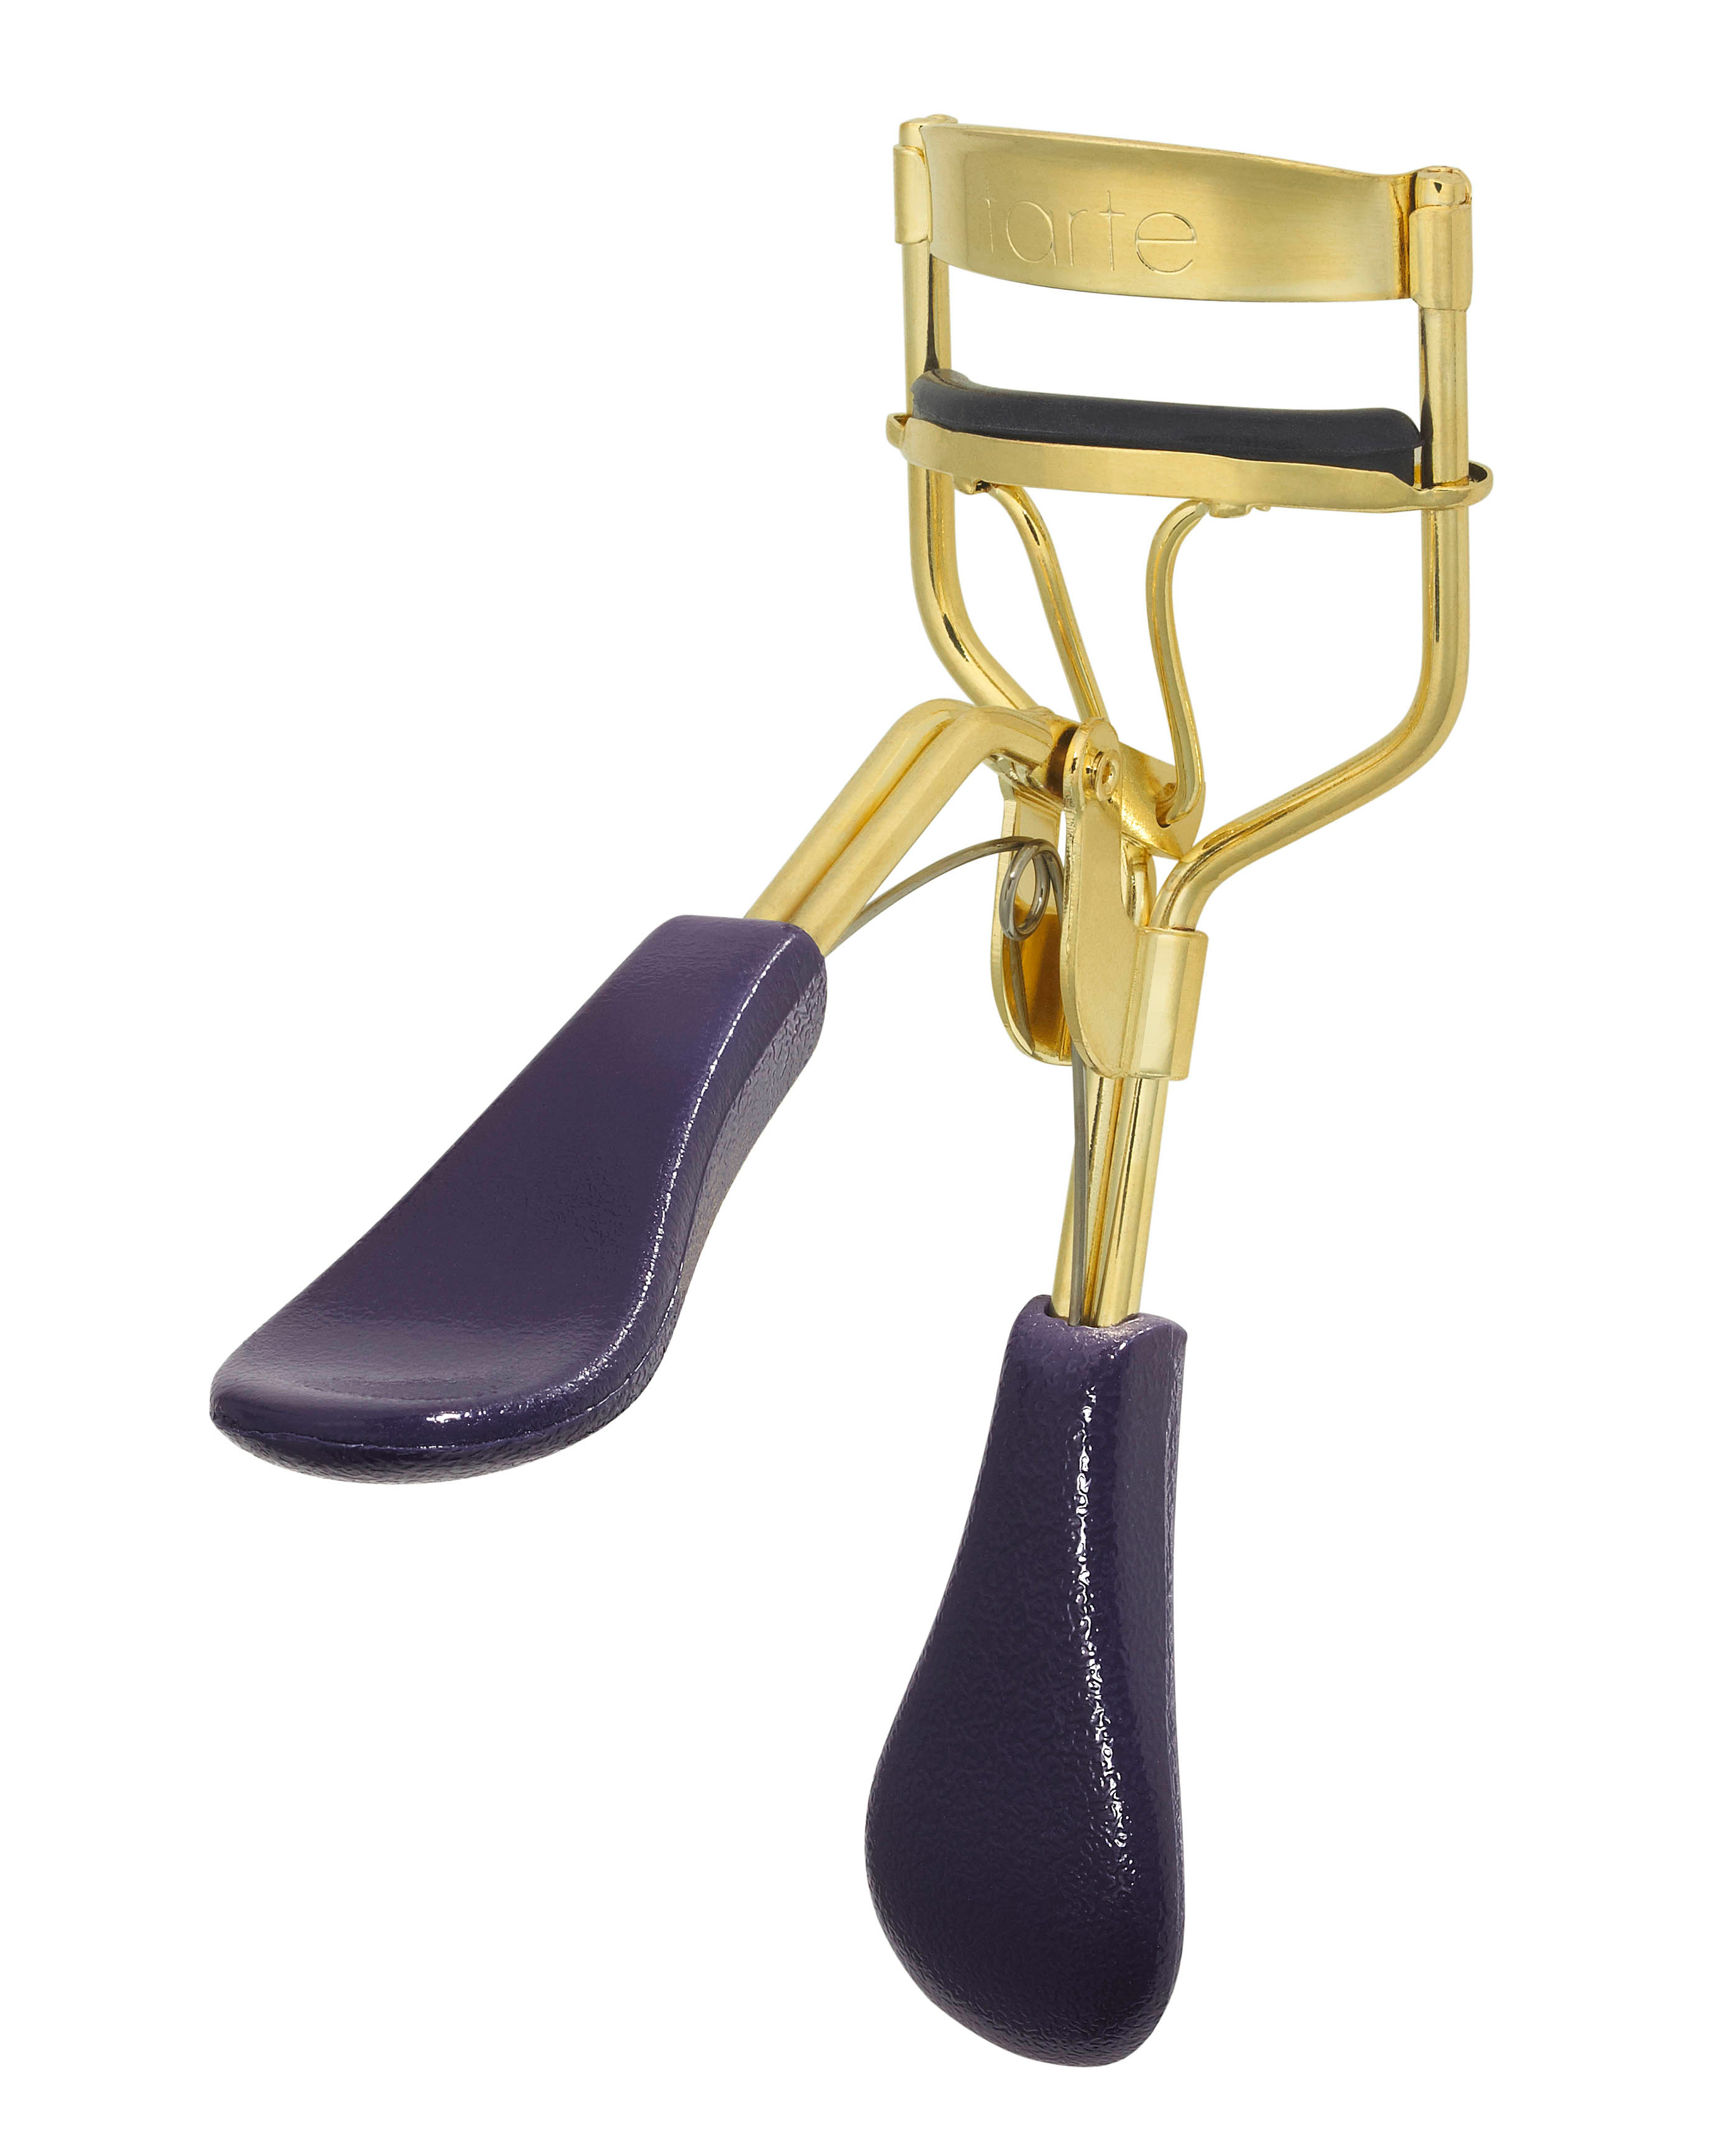 tarte-picture-perfect-eyelash-curler-0414.jpg